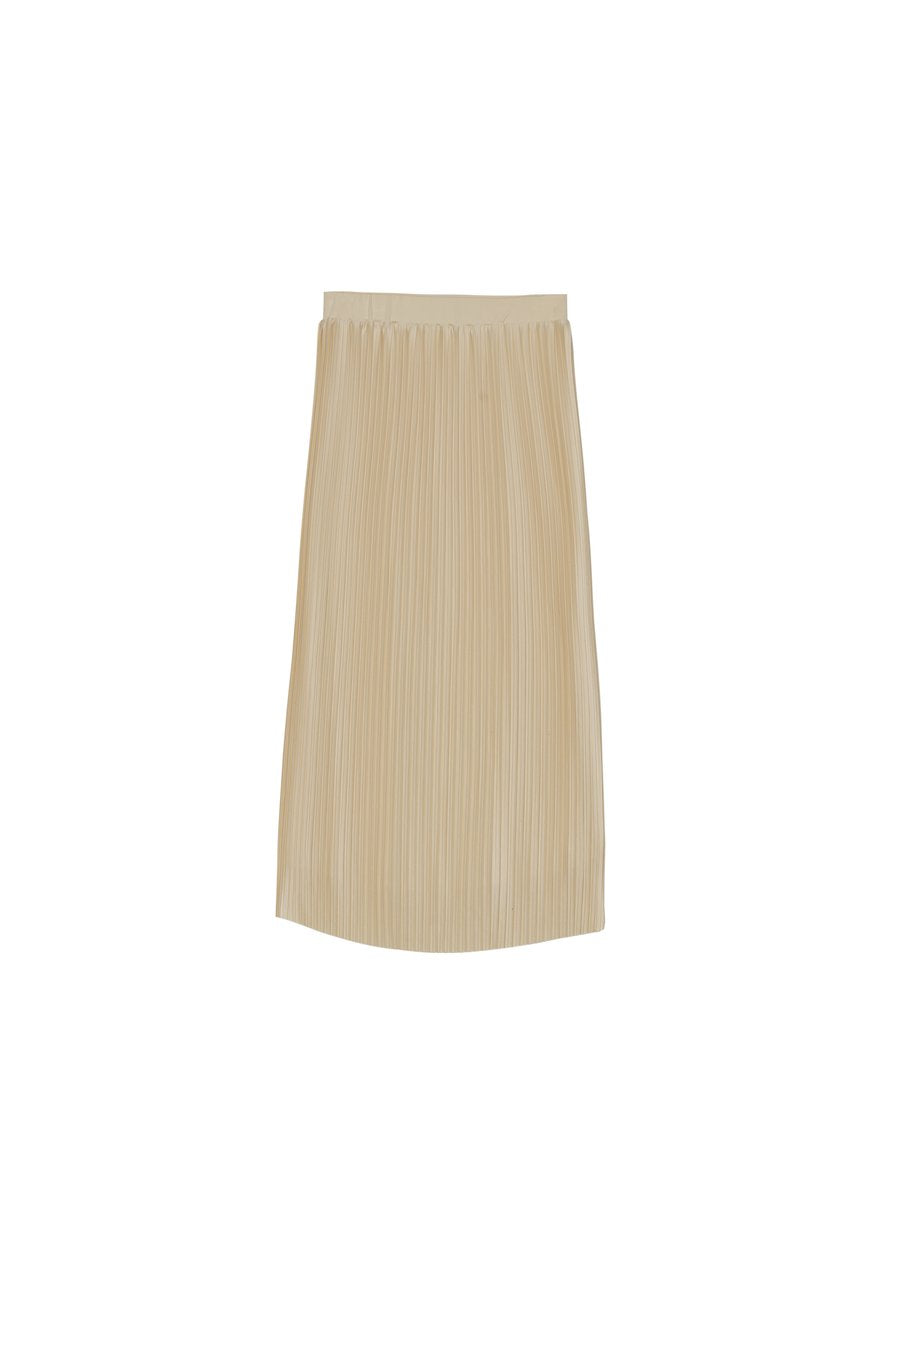 Stylein Isa Skirt Yellow - Mojo Independent Store